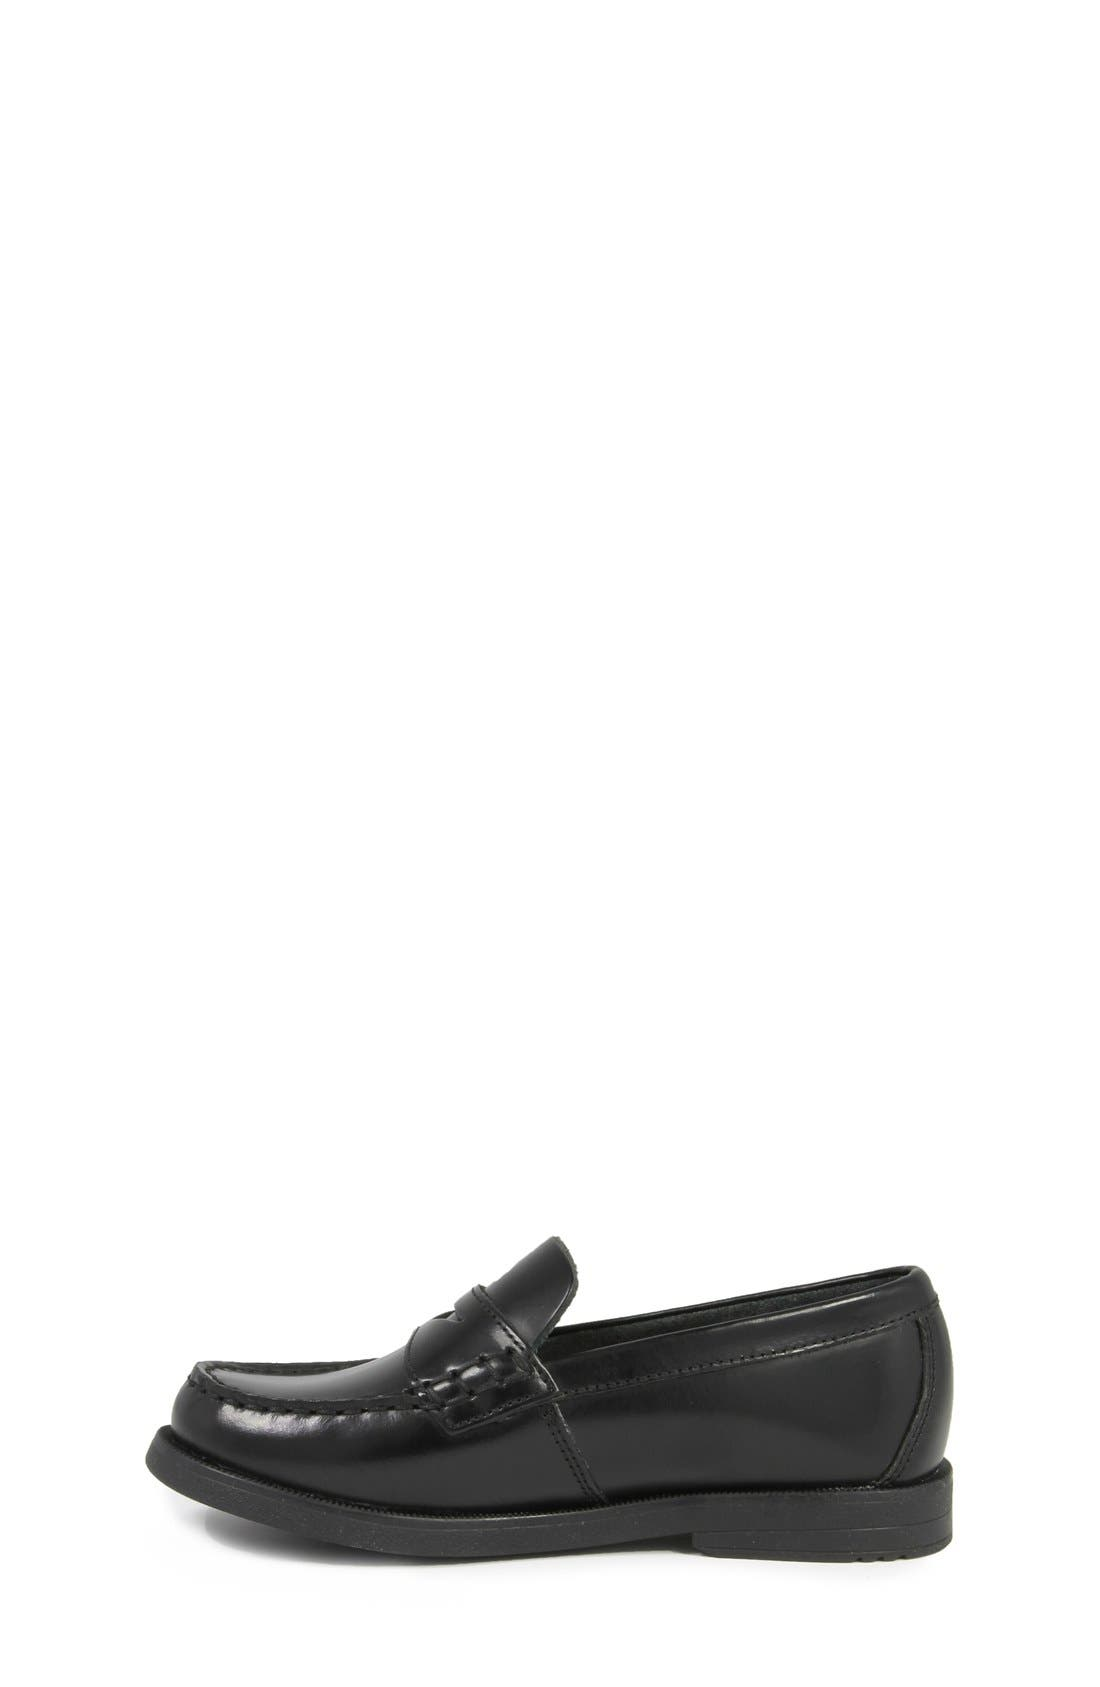 'Croquet' Penny Loafer,                             Alternate thumbnail 2, color,                             Black